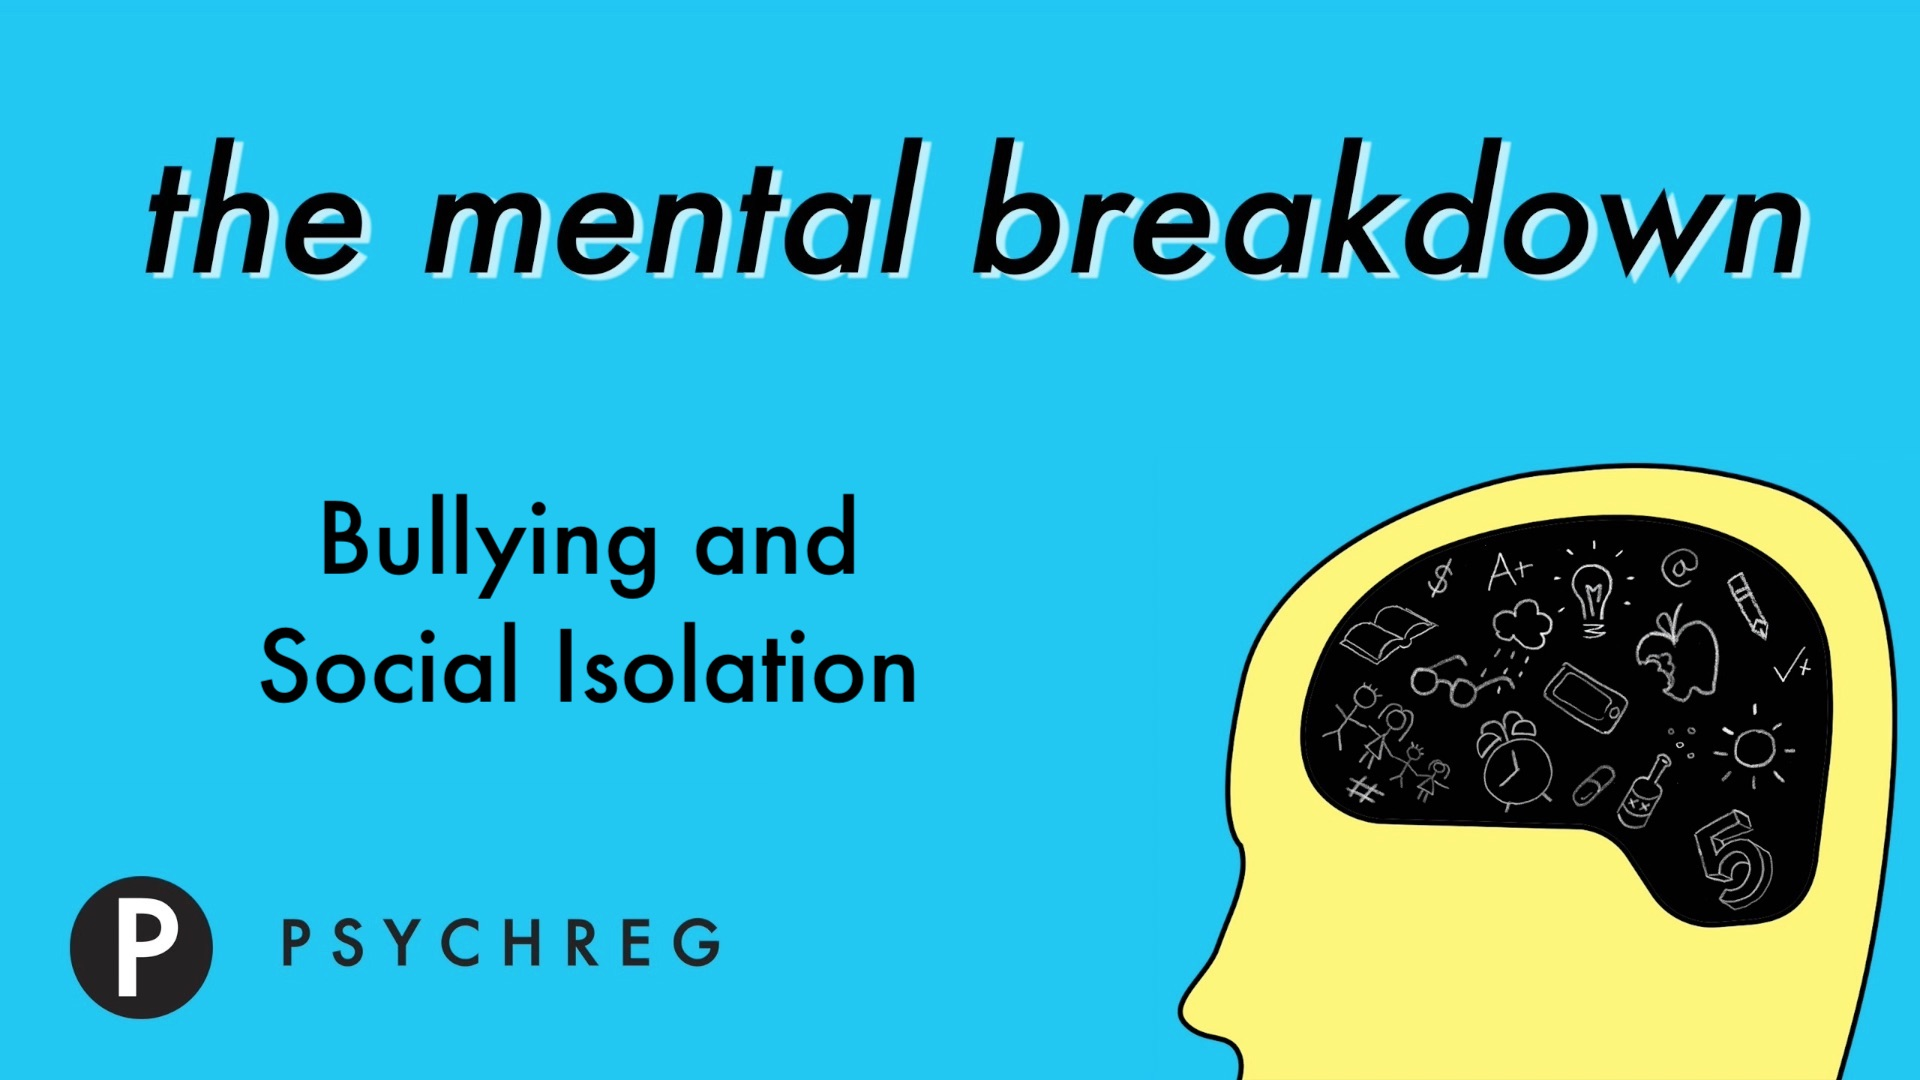 Bullying and Social Isolation - The Mental Breakdown